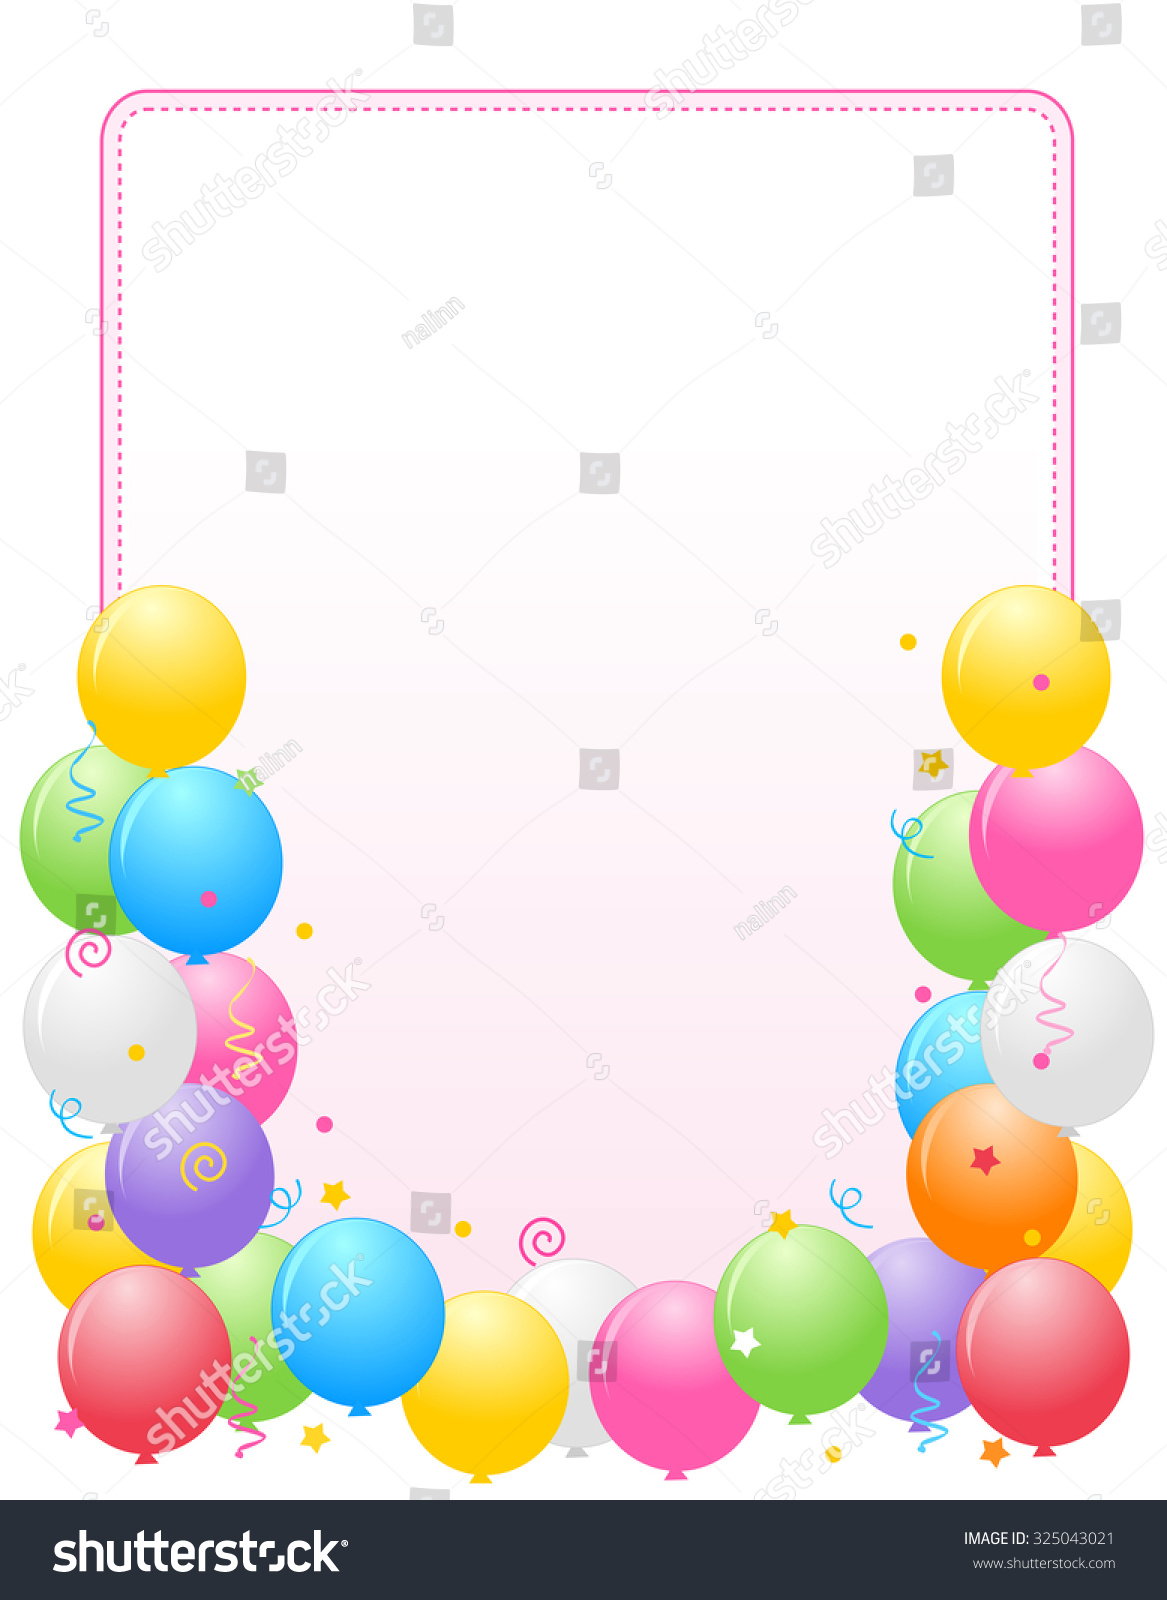 Colorful Balloons Border Frame Illustration Birthday – Birthday Cards Backgrounds